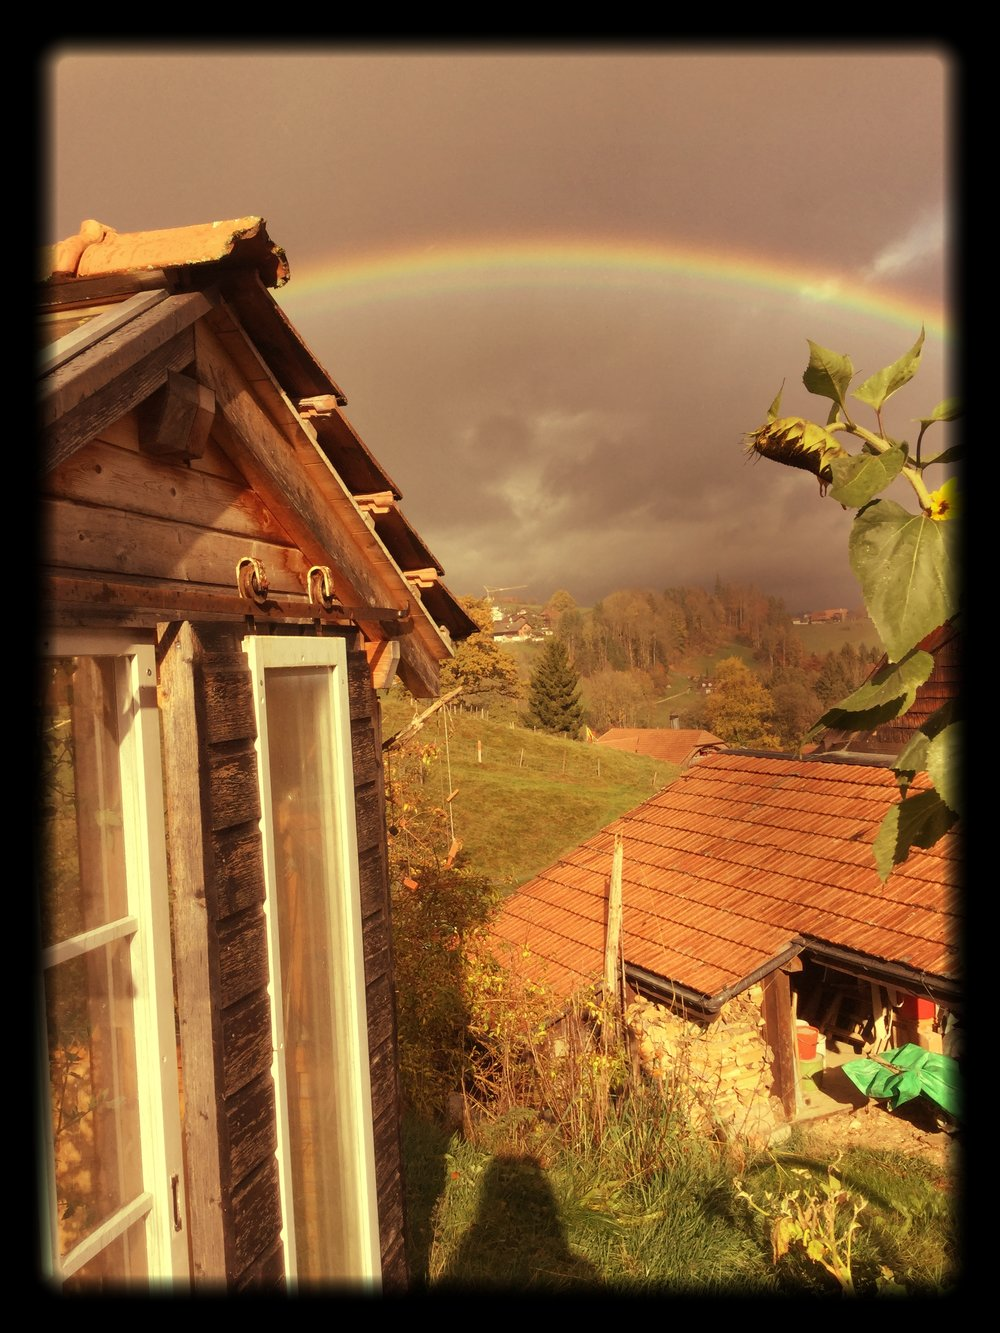 A_gardenhouse_a_sunflower_and_a_rainbow